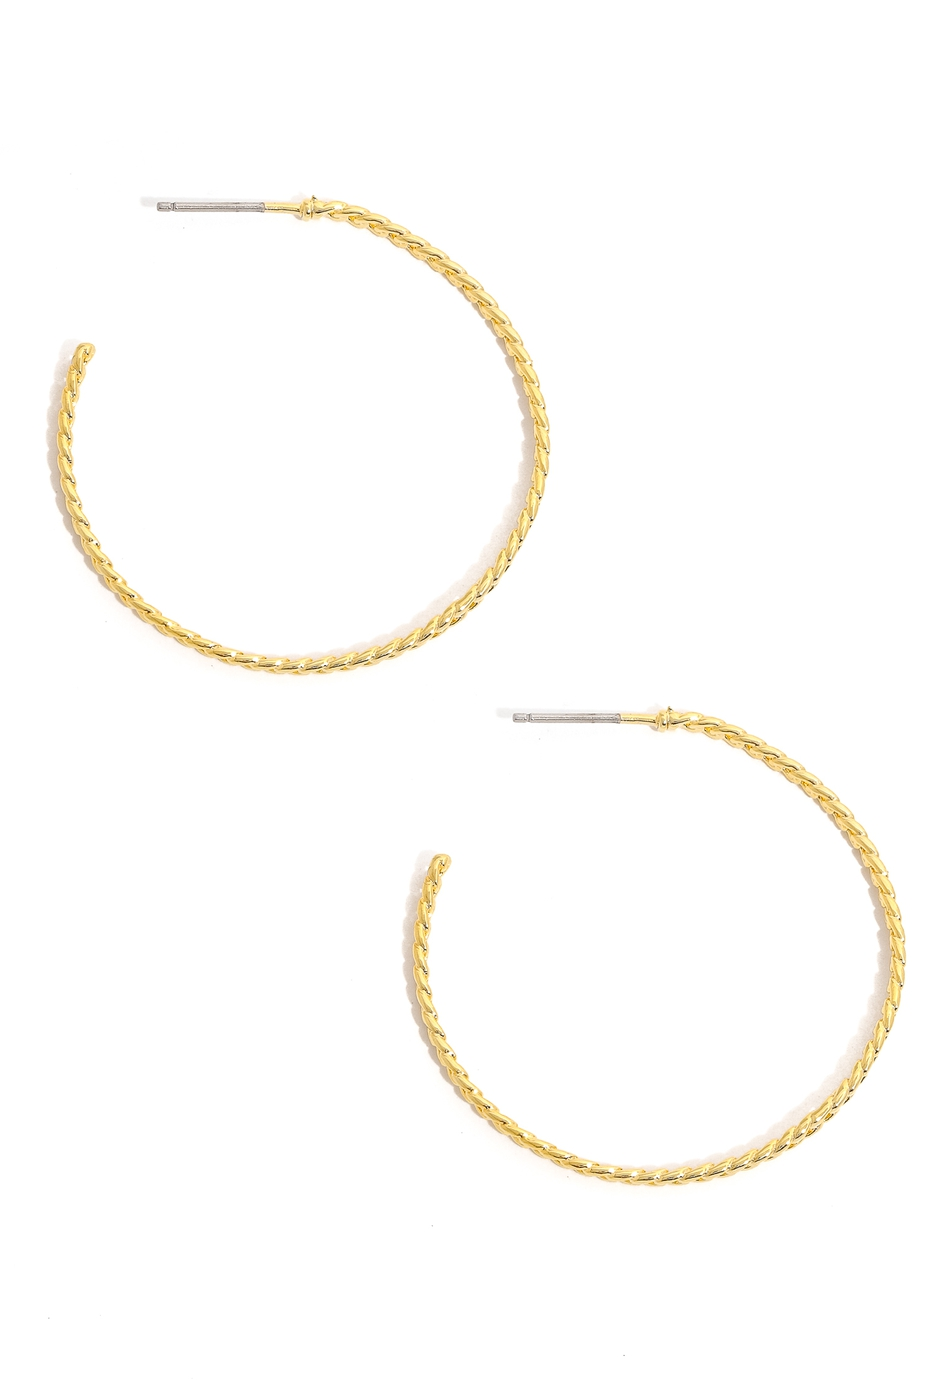 Dainty Metallic Rope Hoop Earrings - orangeshine.com